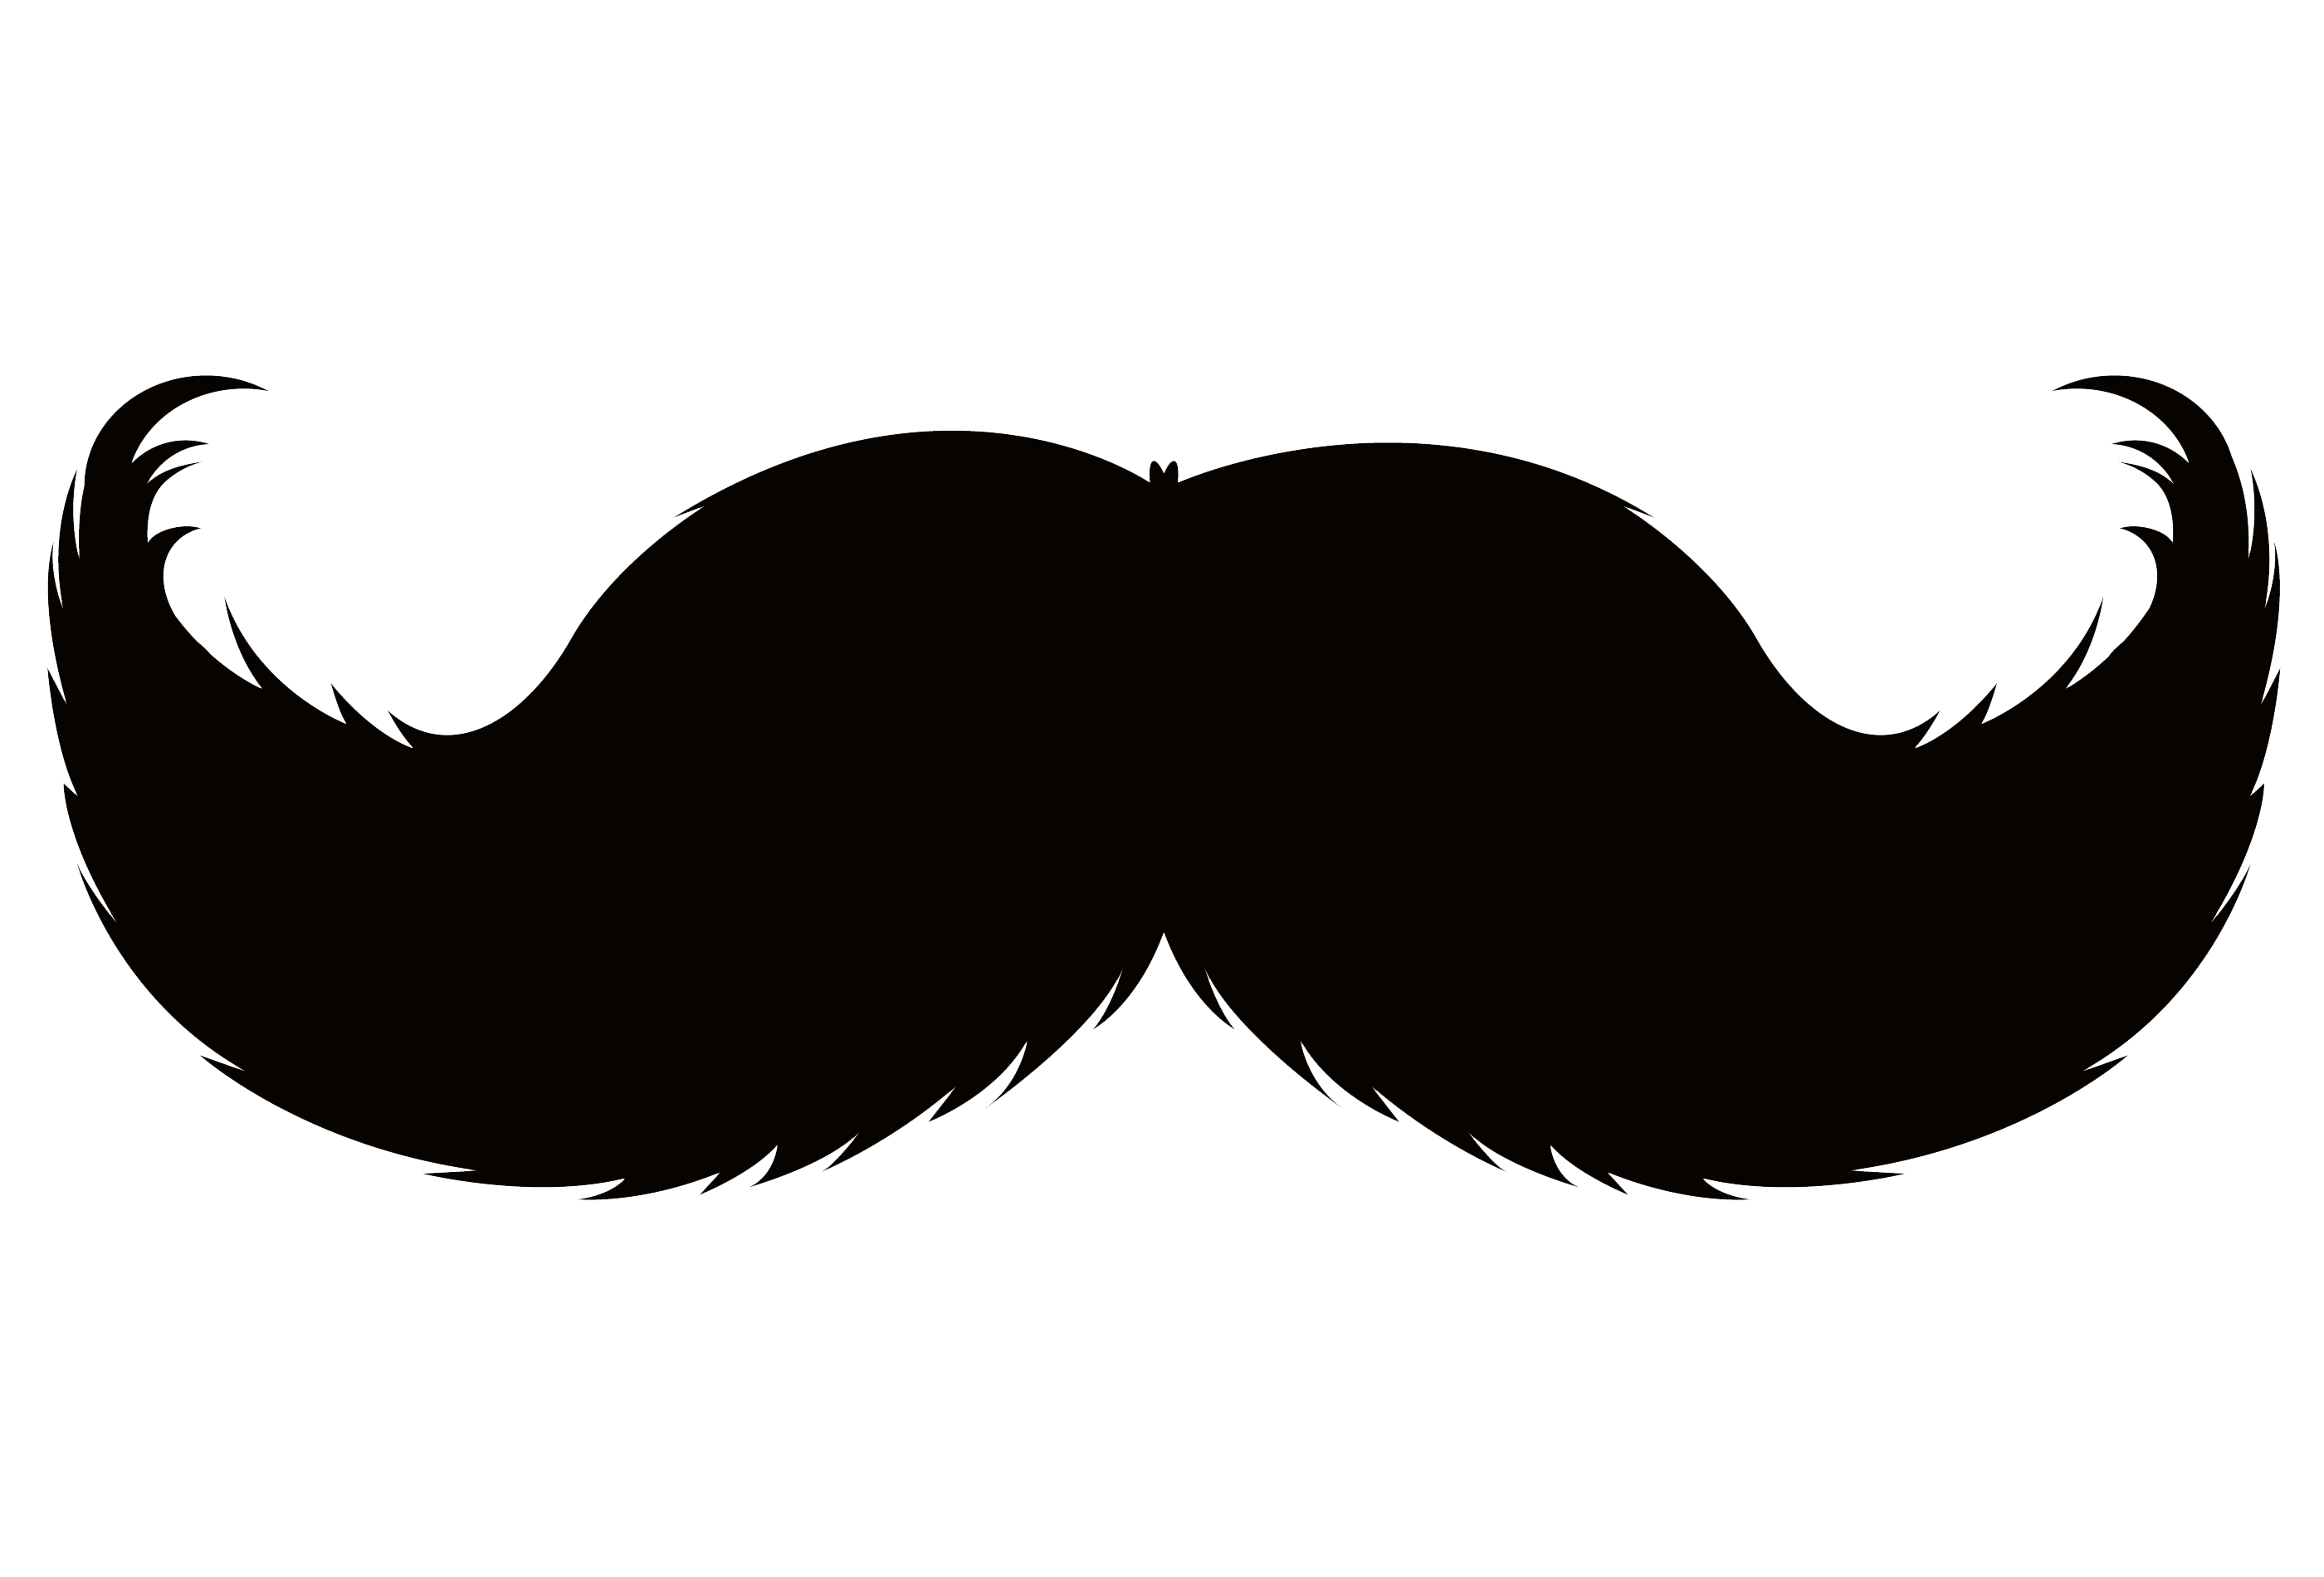 Free Cartoon Mustache Png, Download Free Clip Art, Free Clip.